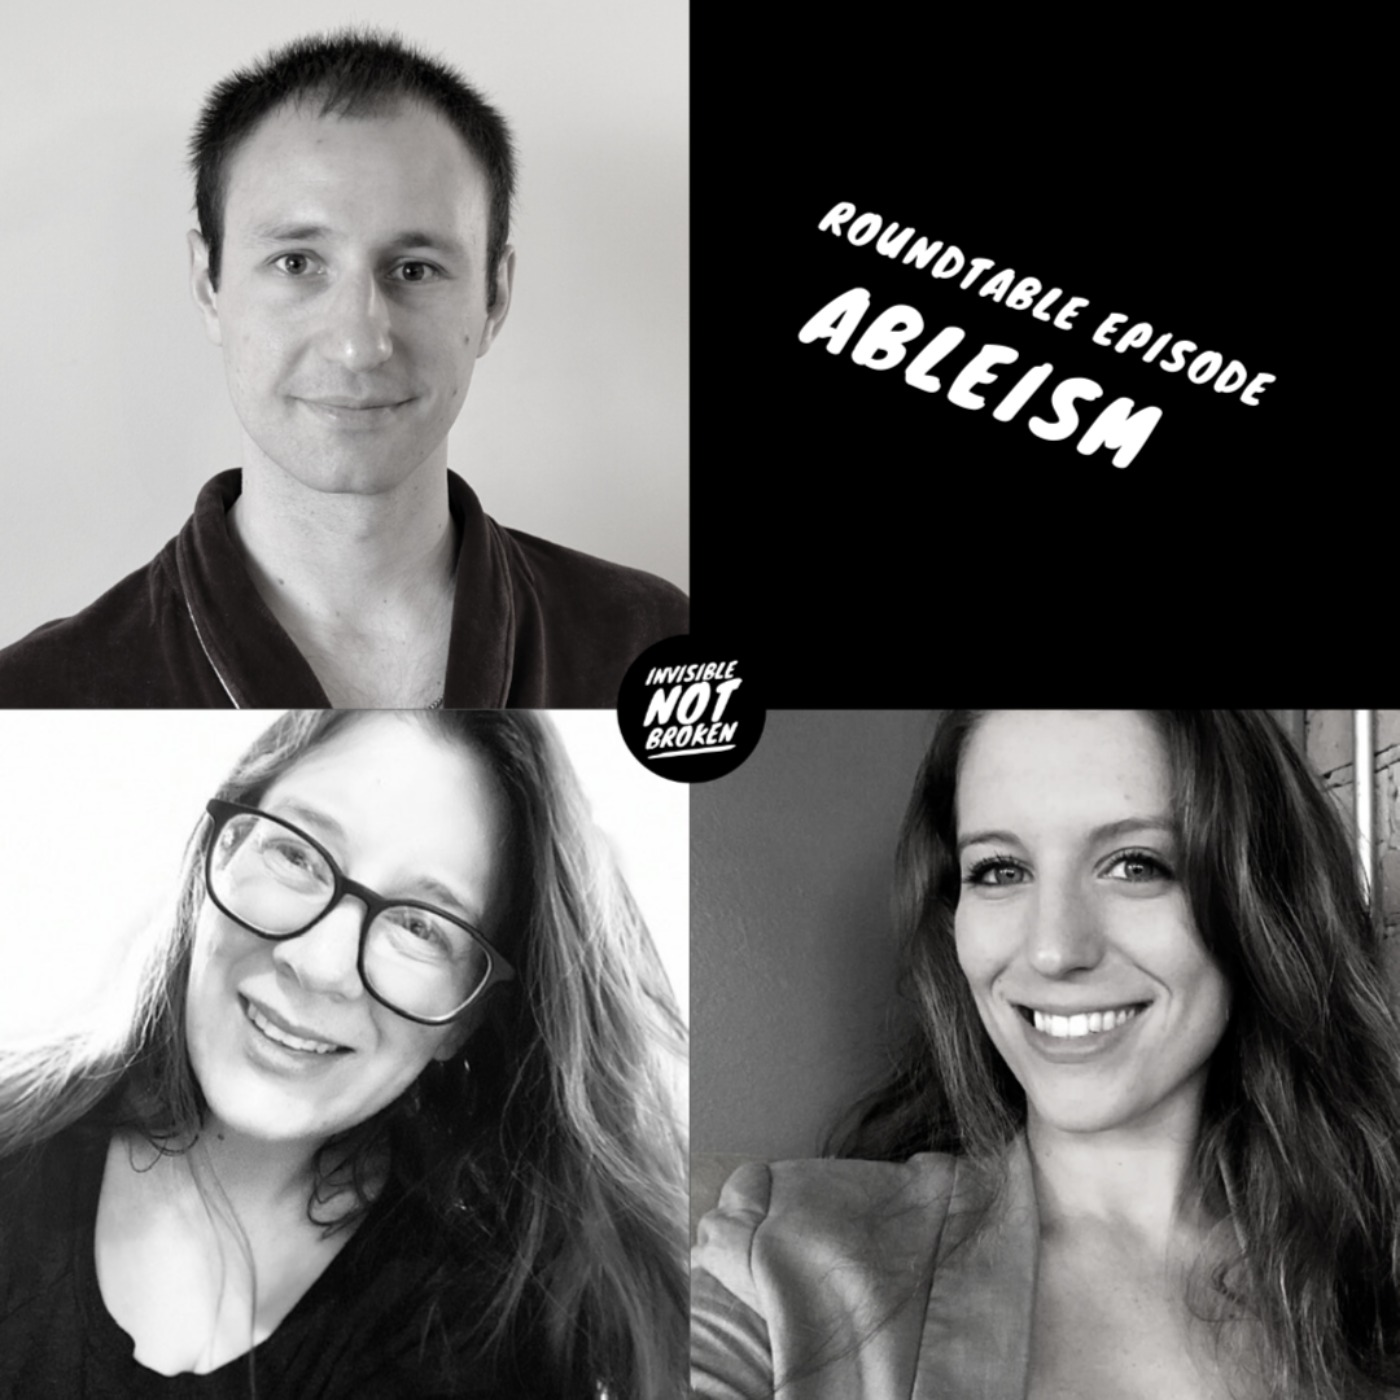 Roundtable – Ableism (Part 1) with Monica, Eva and Jason